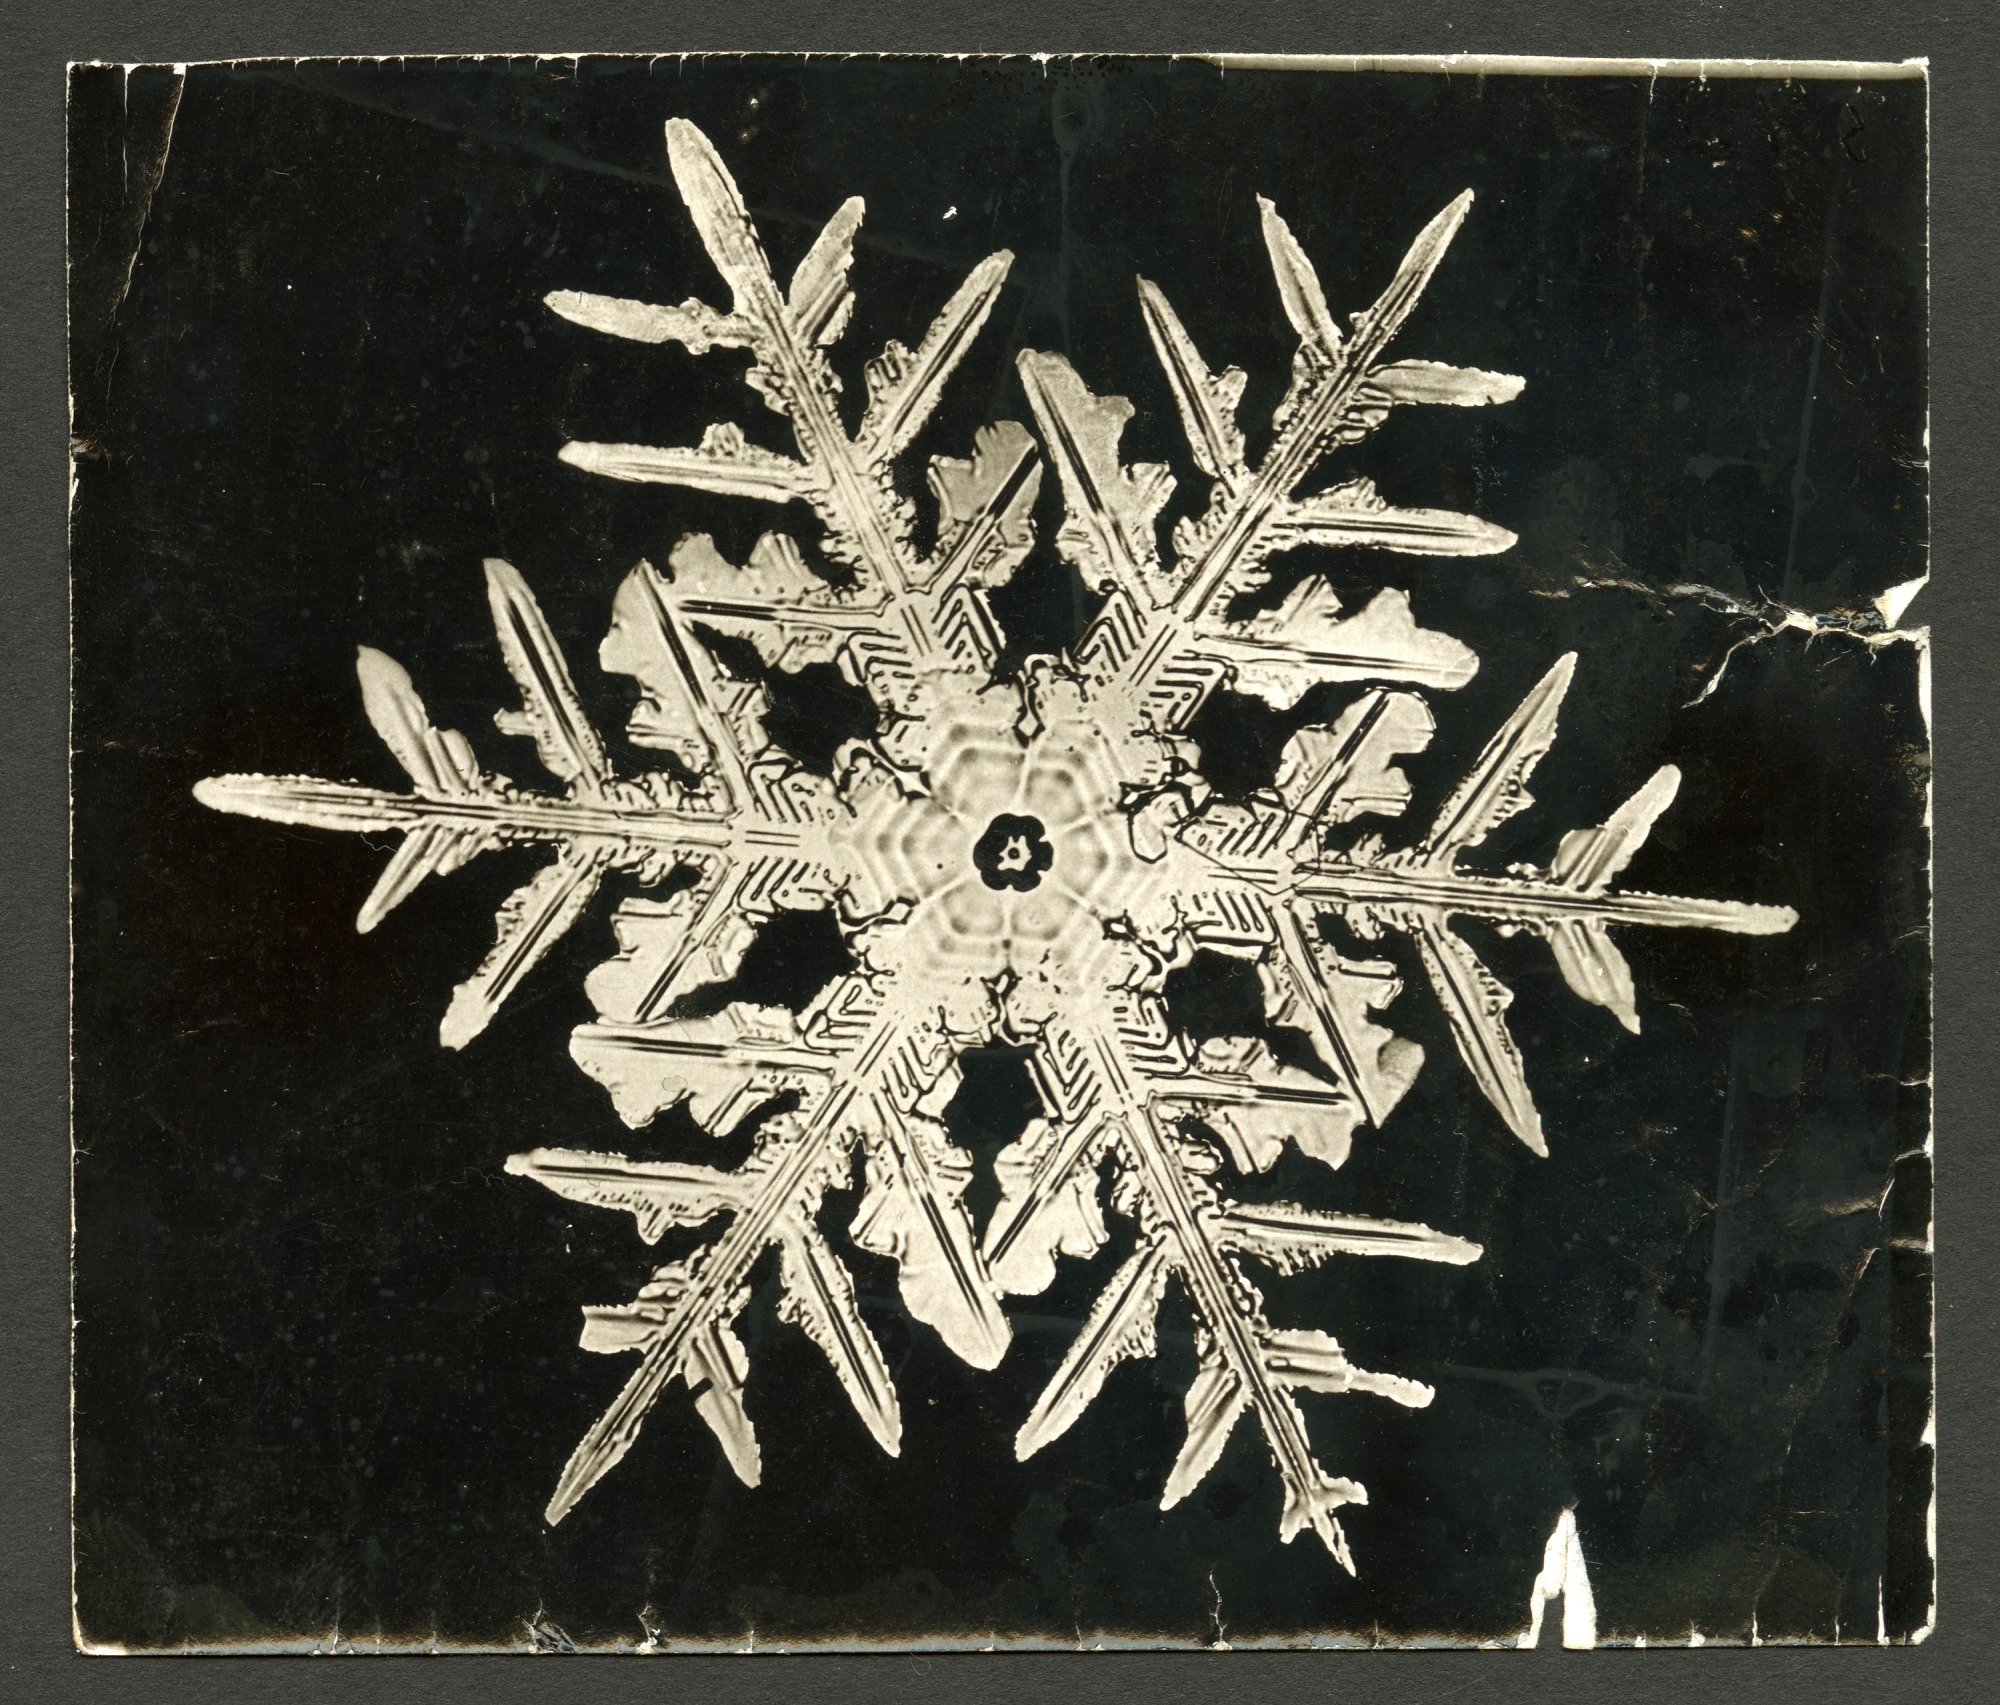 images for Wilson Bentley's Snowflake 332, c. 1890